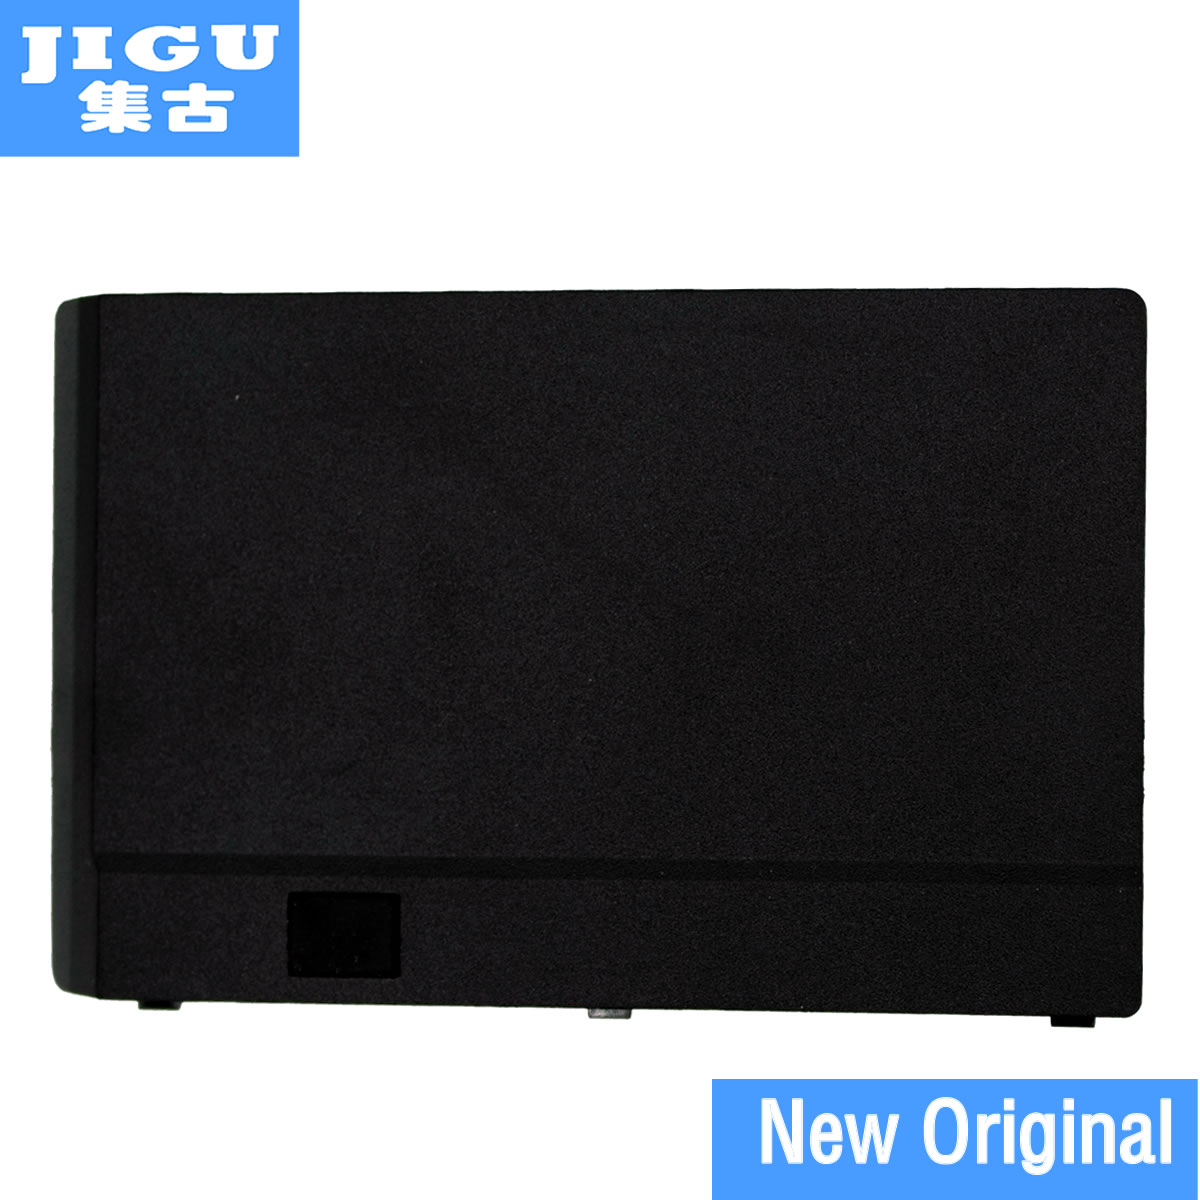 JIGU laptop battery 6-87-W370S-427 6-87-W370S-4271 6-87-W37ES-427 6-87-W37SS-427 W370BAT-3 W370BAT-8 FOR CLEVO K590S K790S original rechargeable clevo w370bat 8 li ion battery 6 87 w370s 4271 6 87 w37ss 427 k590s laptop battery 14 8v 5200mah 76 96wh